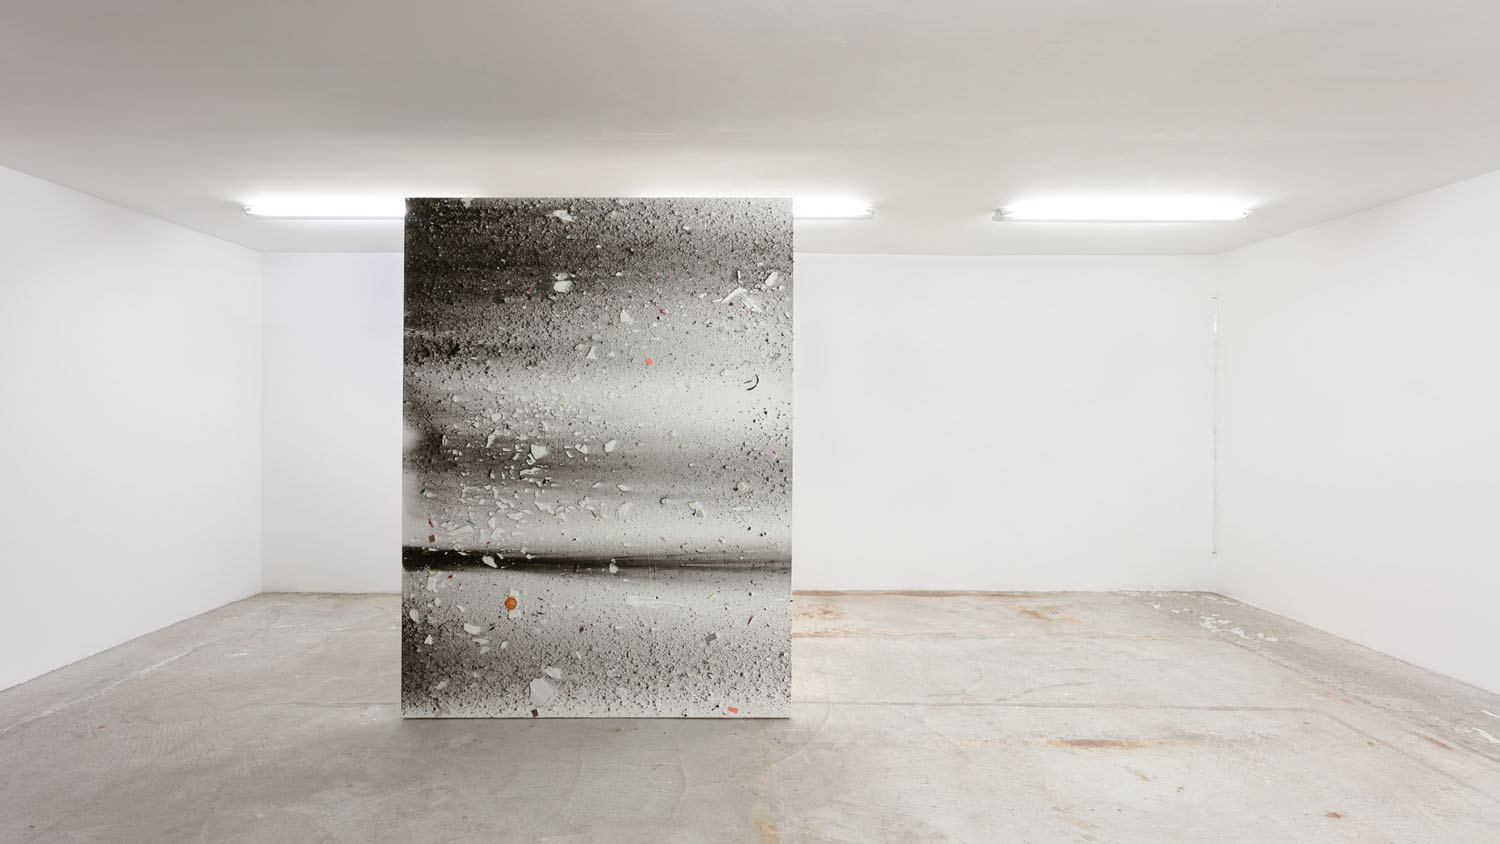 Thomas Fougeirol   Untitled , 2016  Mixed media on canvas  76 x 57 inches    Jo-ey Tang   Bullet Through Glass, Milk Finds Its Form... , 2017  Plexiglass rod, ink on Japanese Sumi-e paper, and screws  65.6 x 0.5 x 0.5 inches  Installation view